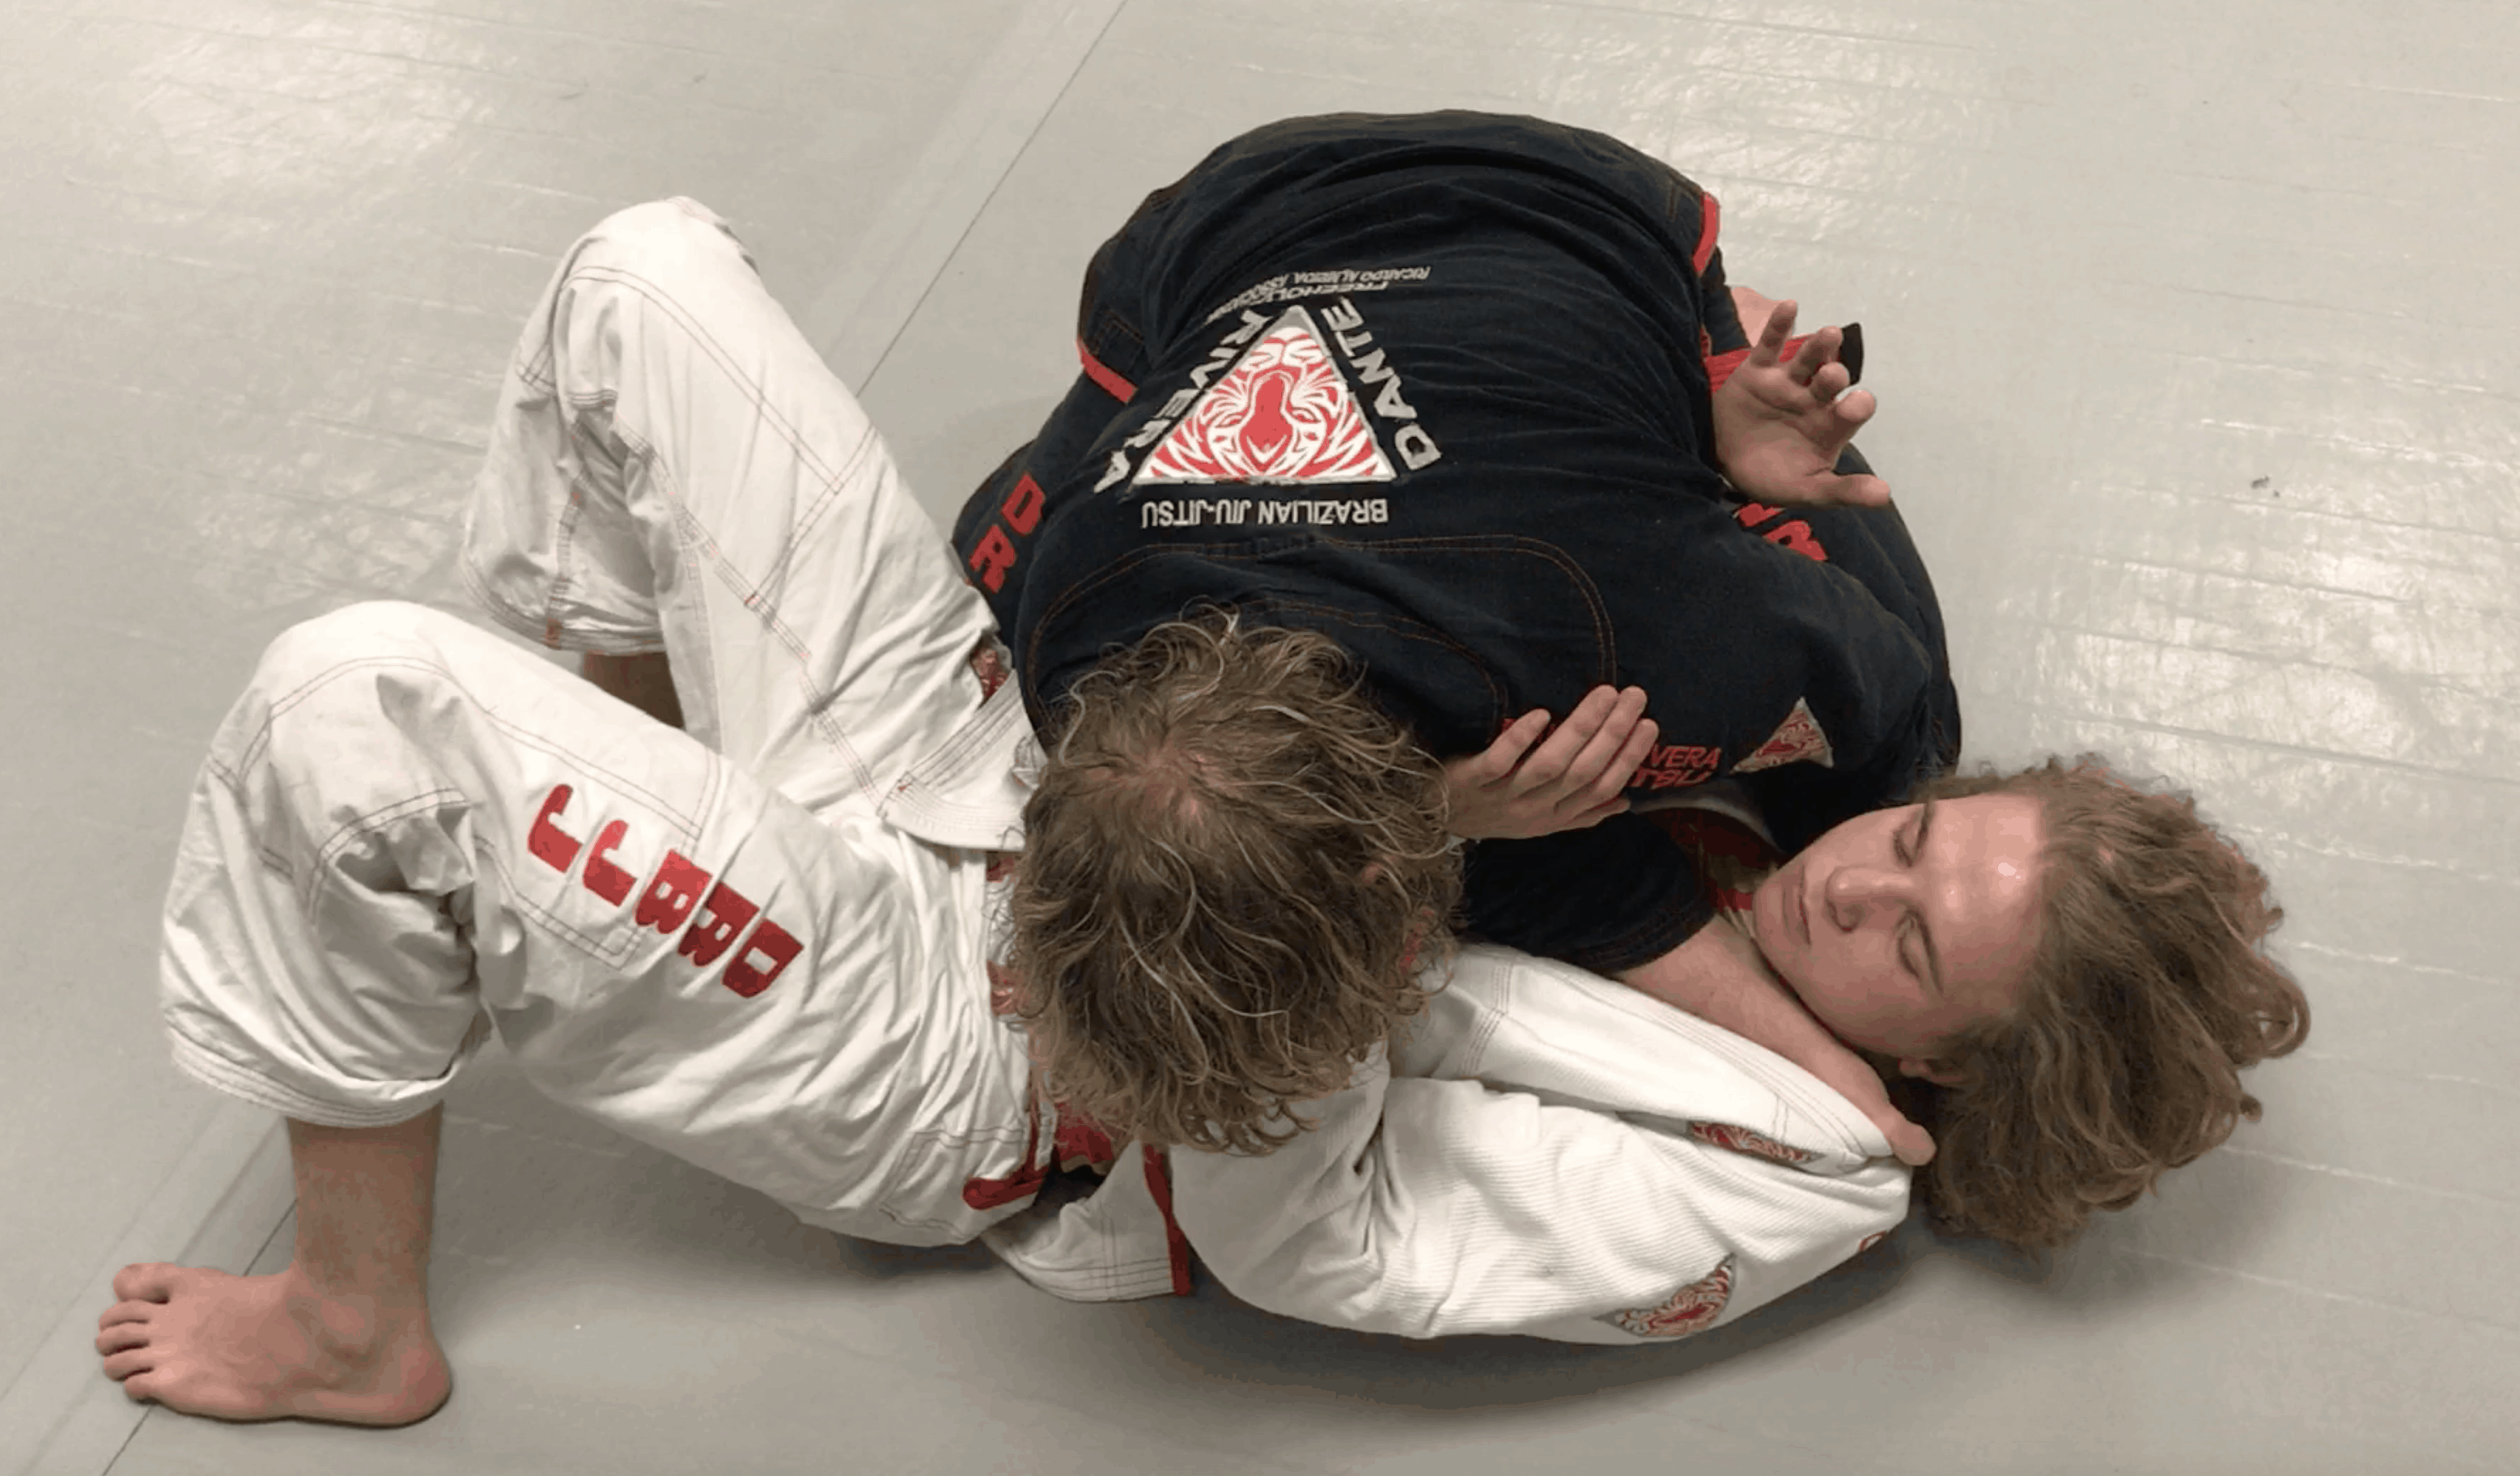 [VIDEO] Top Side Control Gi Control Details, Principles, Spin Choke, Paper Cutter Choke, Step Over Pinch Choke Partial Series